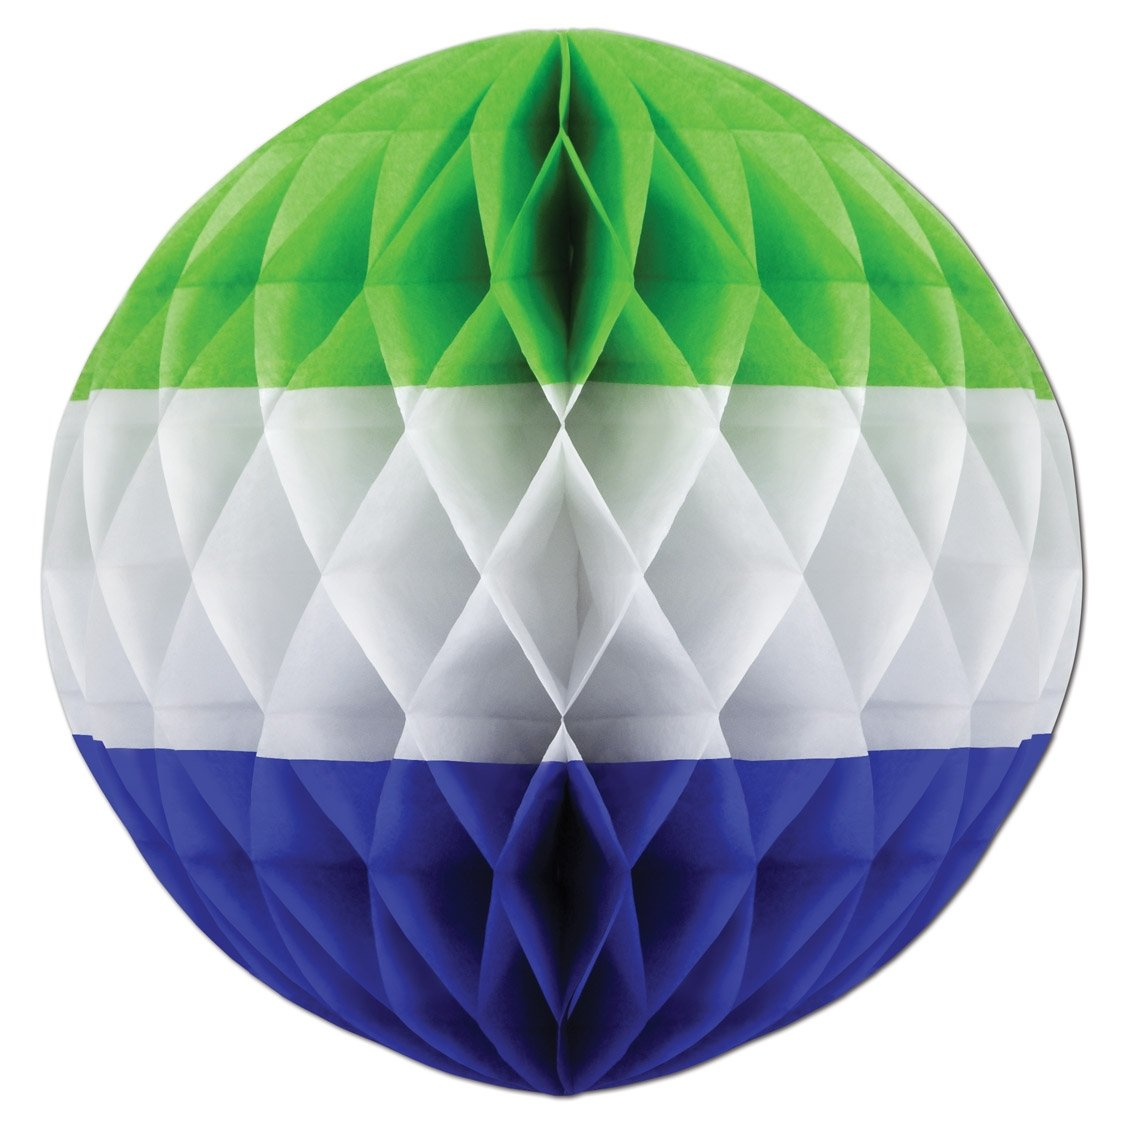 Beistle 1-Pack Tri-Color Tissue Ball, 14-Inch, Lime Green/White/Medium Blue